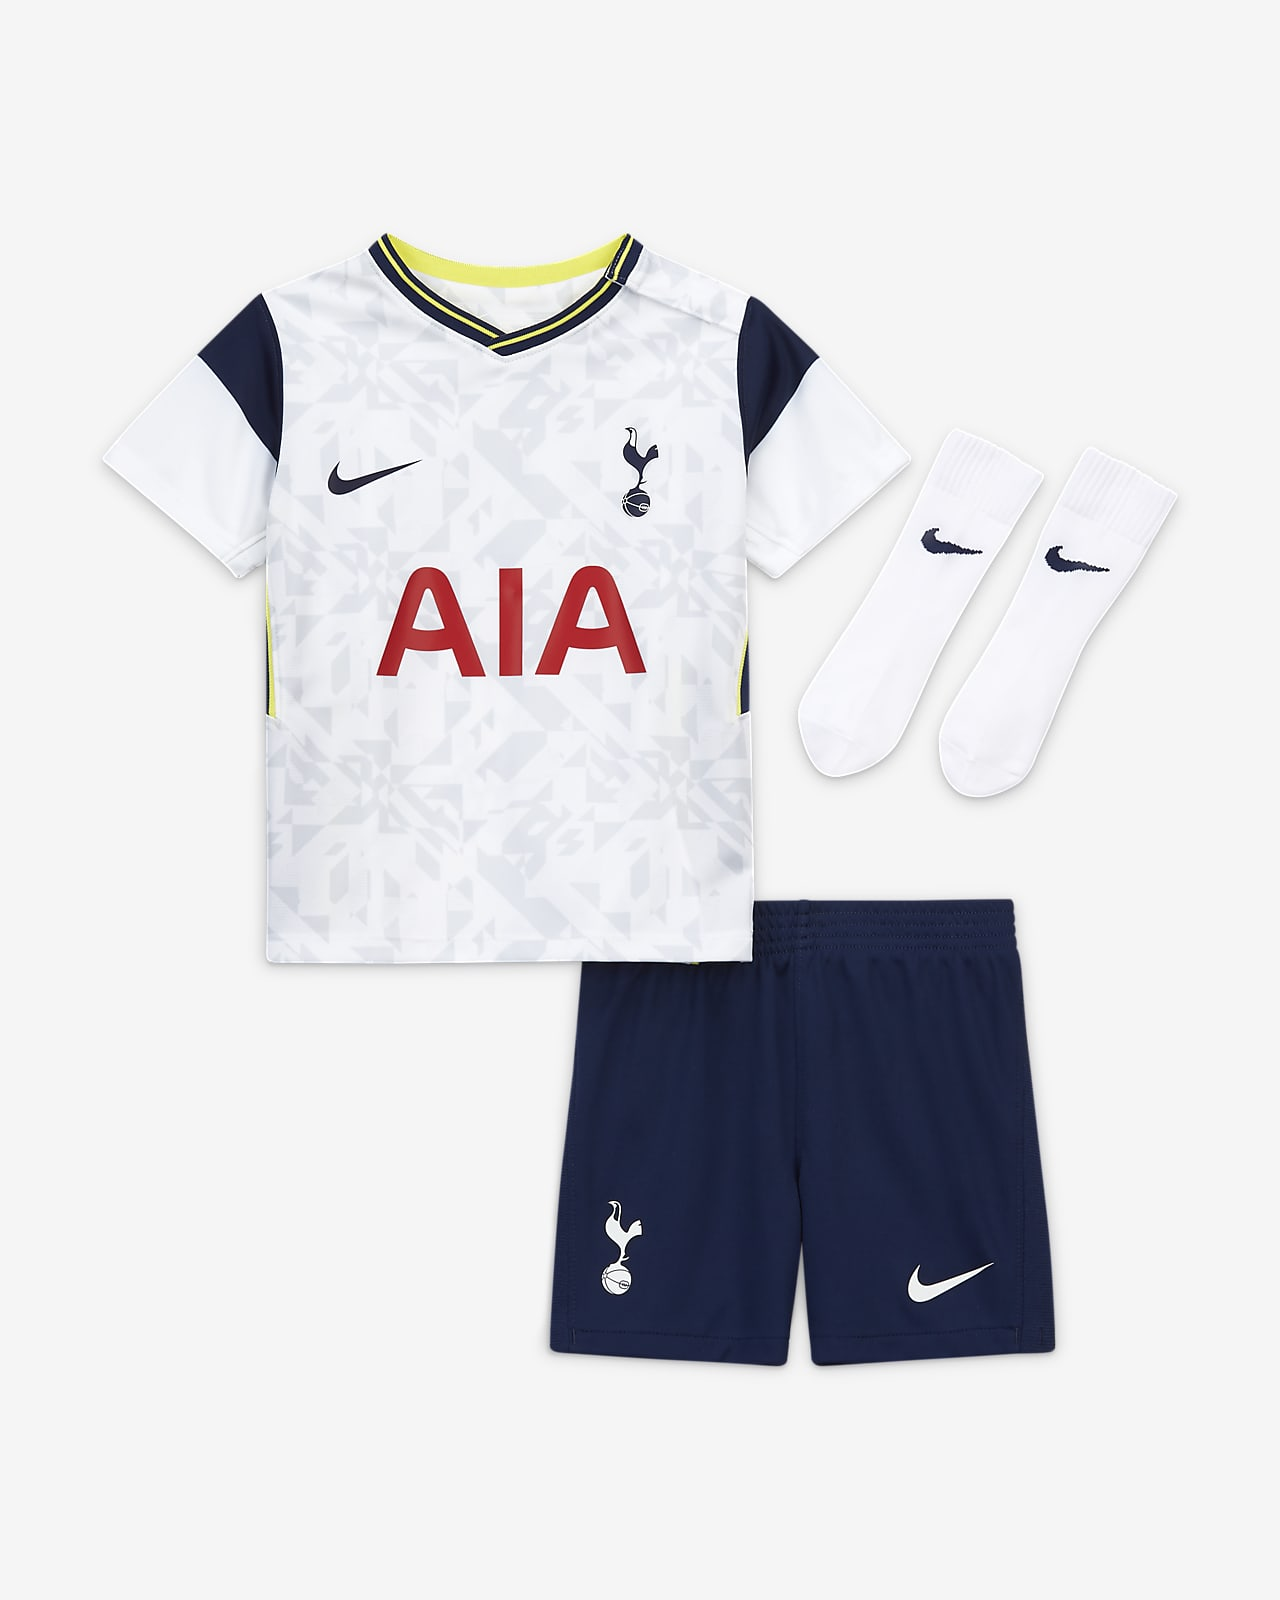 Tottenham Hotspur 2020/21 Home Baby and Toddler Football Kit